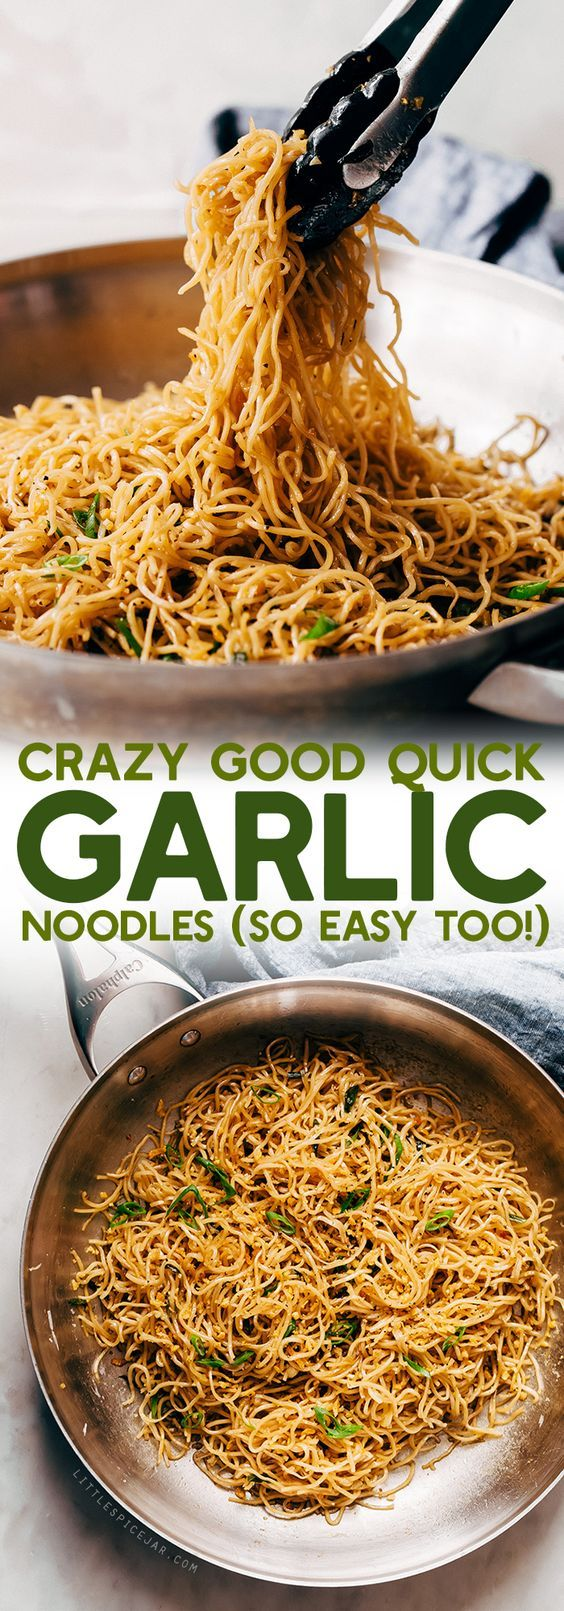 Crazy Good Quick Garlic Noodles - a quick 15 minutes for garlic noodles! These noodles are a fusion recipe and have the BEST flavor! Made on 02-27-2018 added cabbage and yellow bell pepper